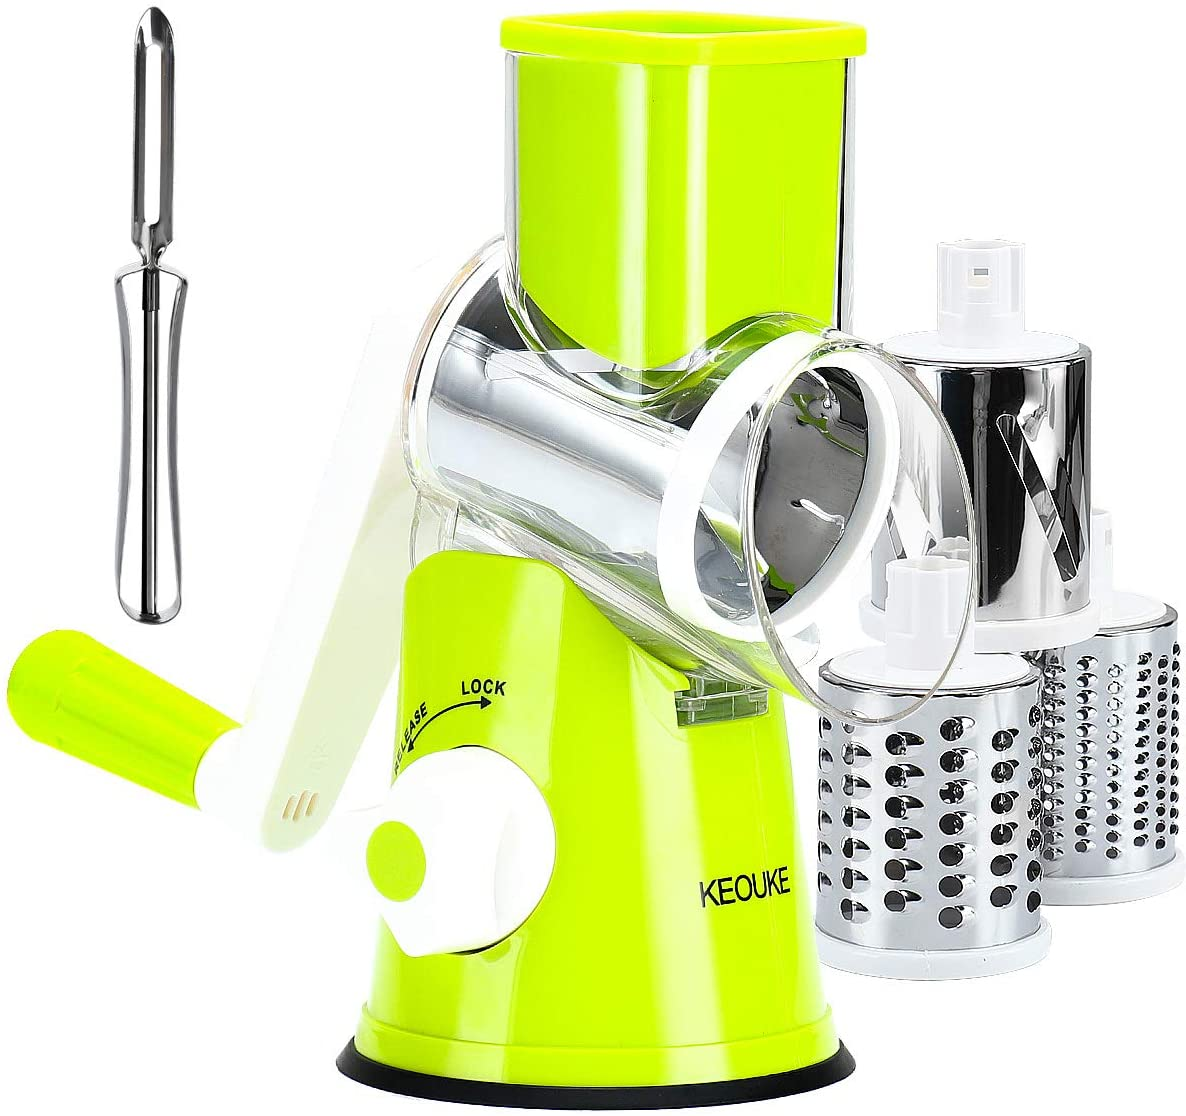 KEOUKE Manual Rotary Cheese Grater